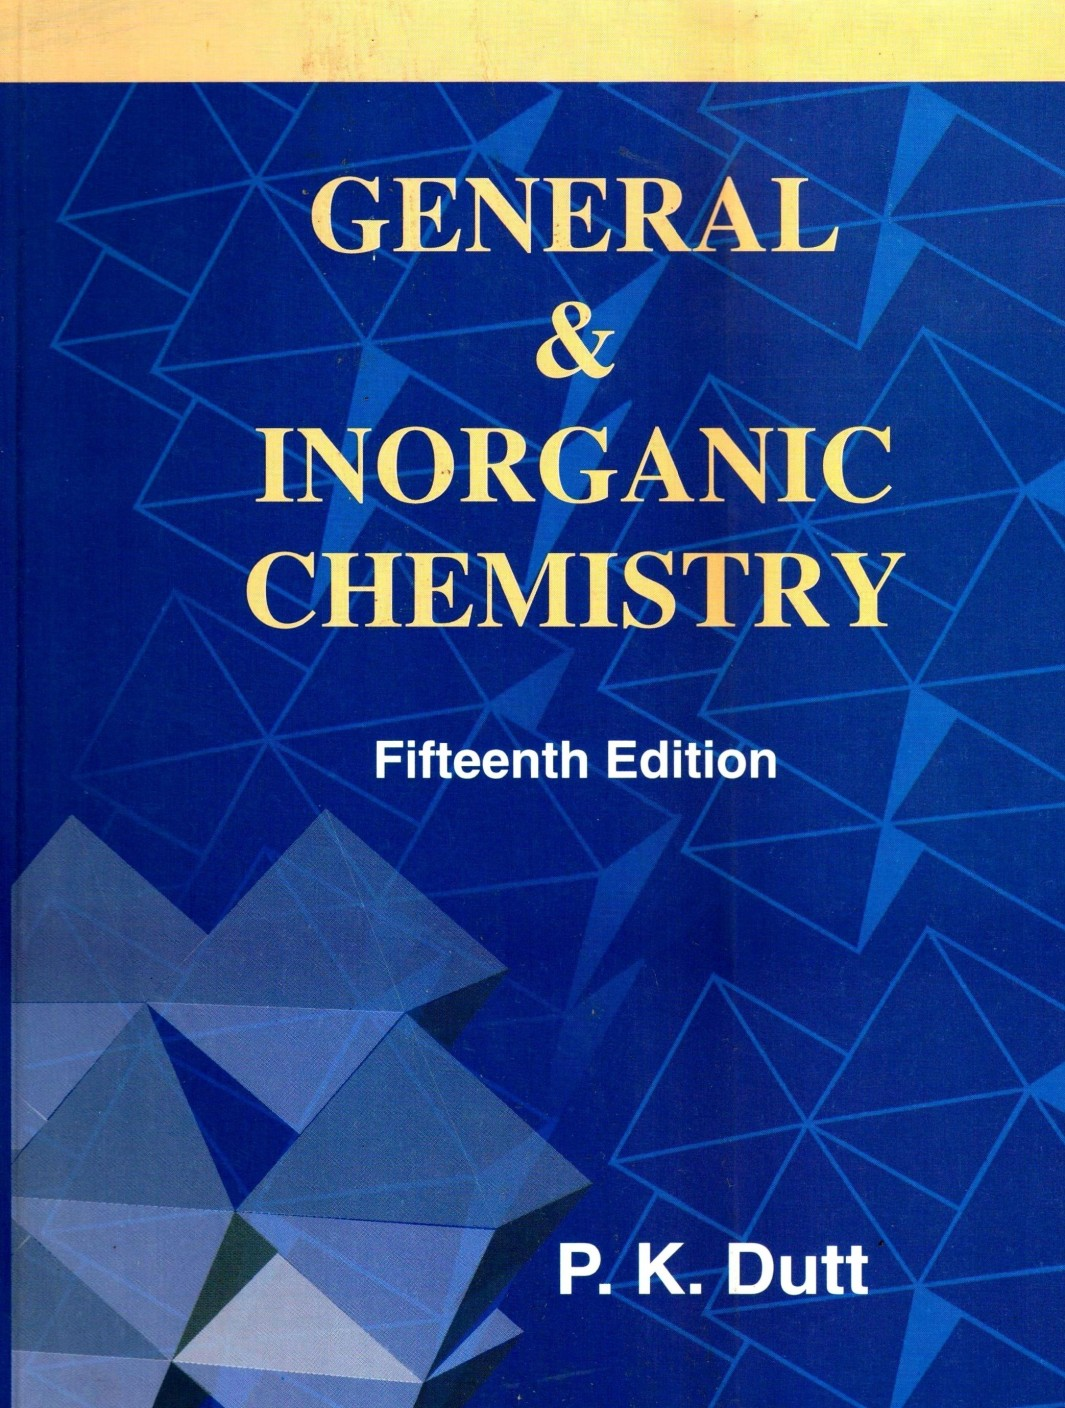 general and inorganic chemistry general and honours course th general and inorganic chemistry general and honours course 15th edition 01 edition 01 edition english paperback dutt p k